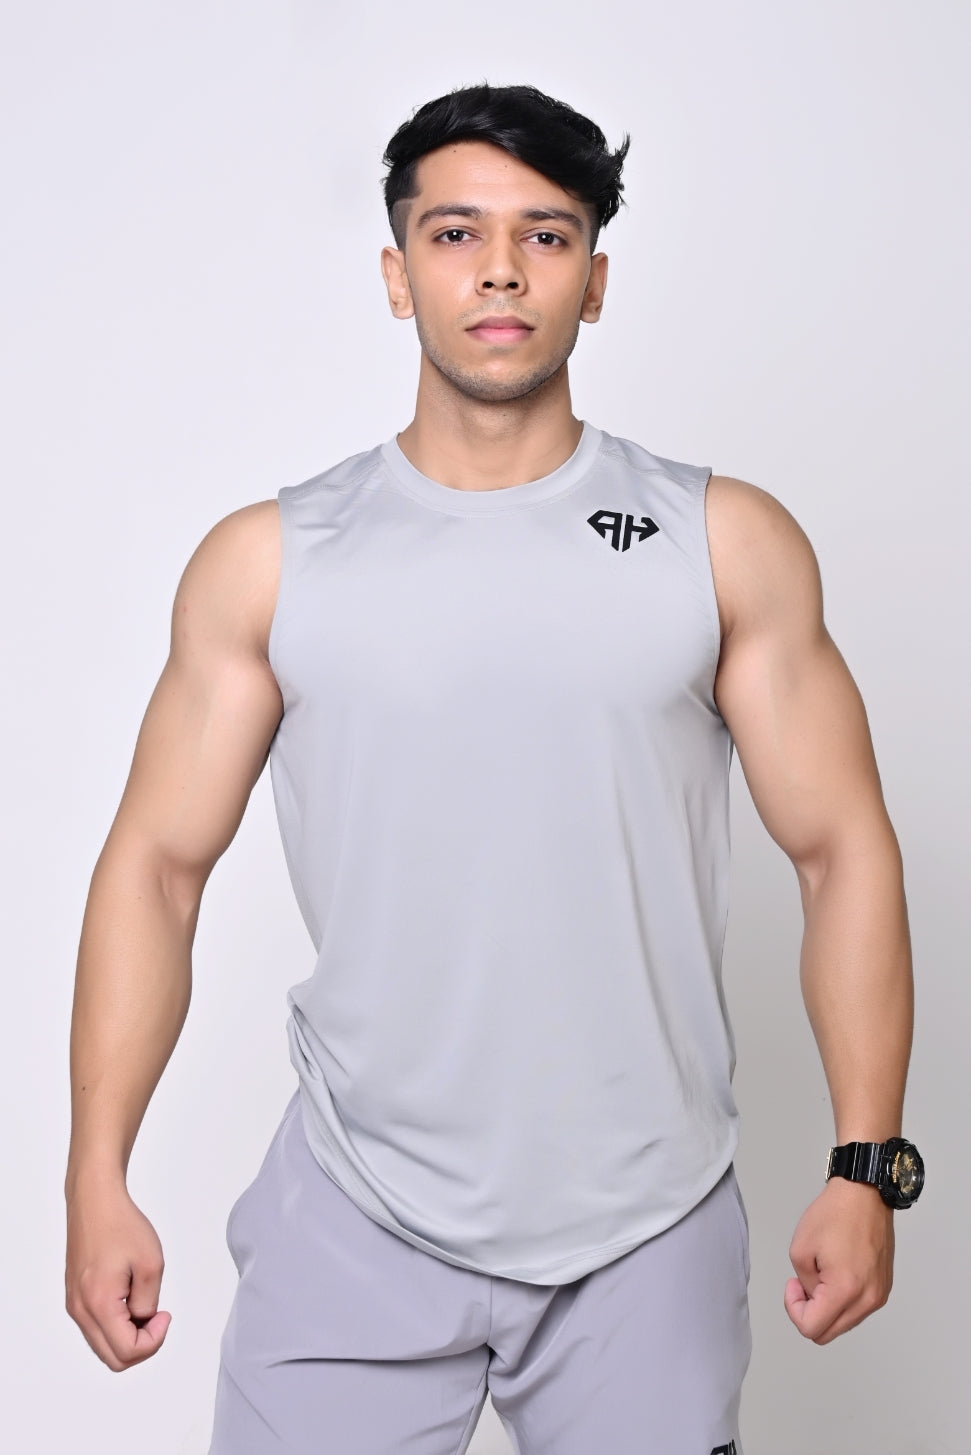 AH GYM VEST - MAN- LIGHT GREY